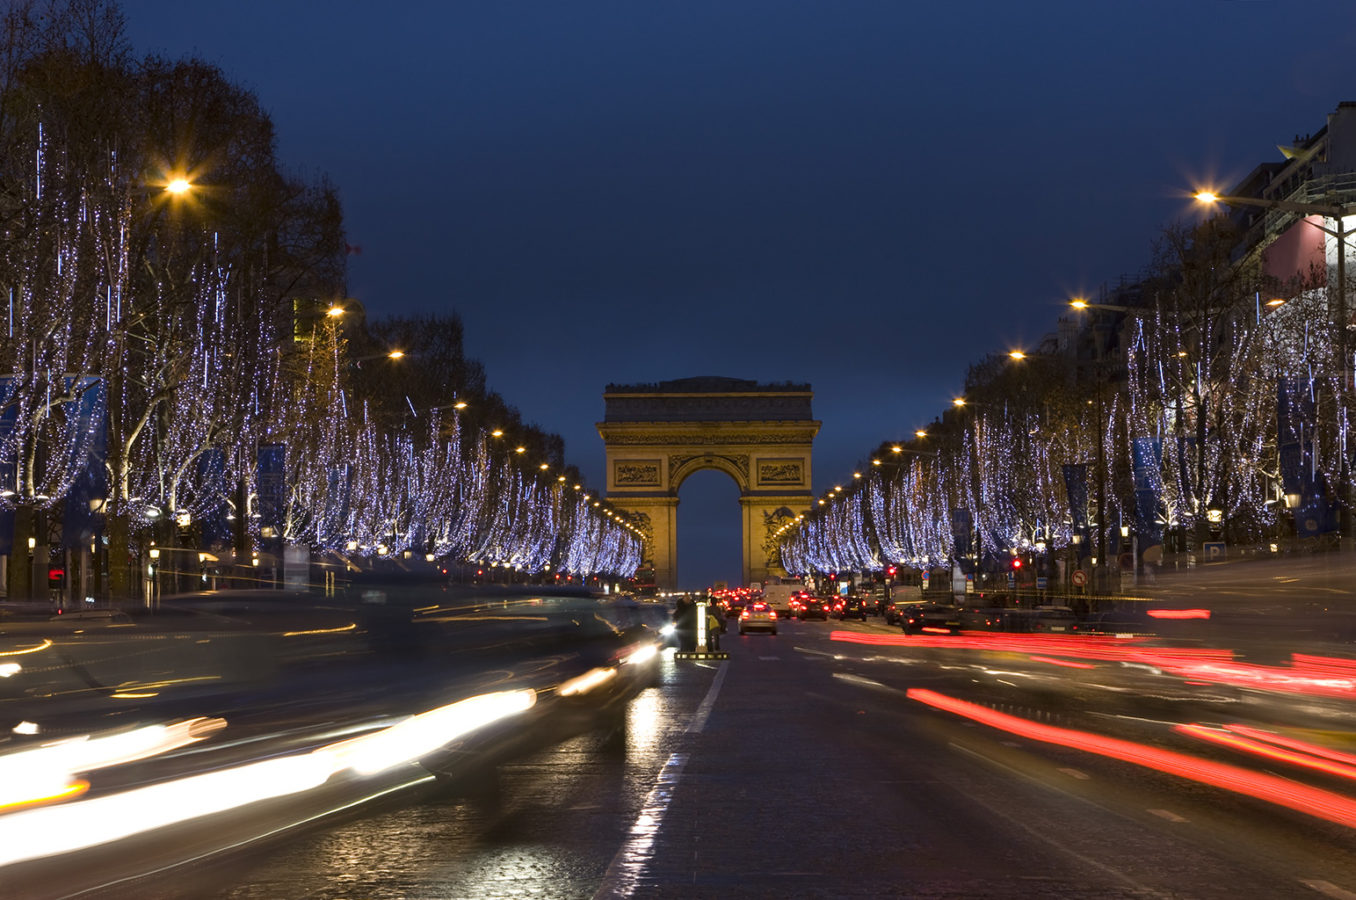 This year, you can take part in turning on the Christmas lights on Paris Champs Elysees from your sofa